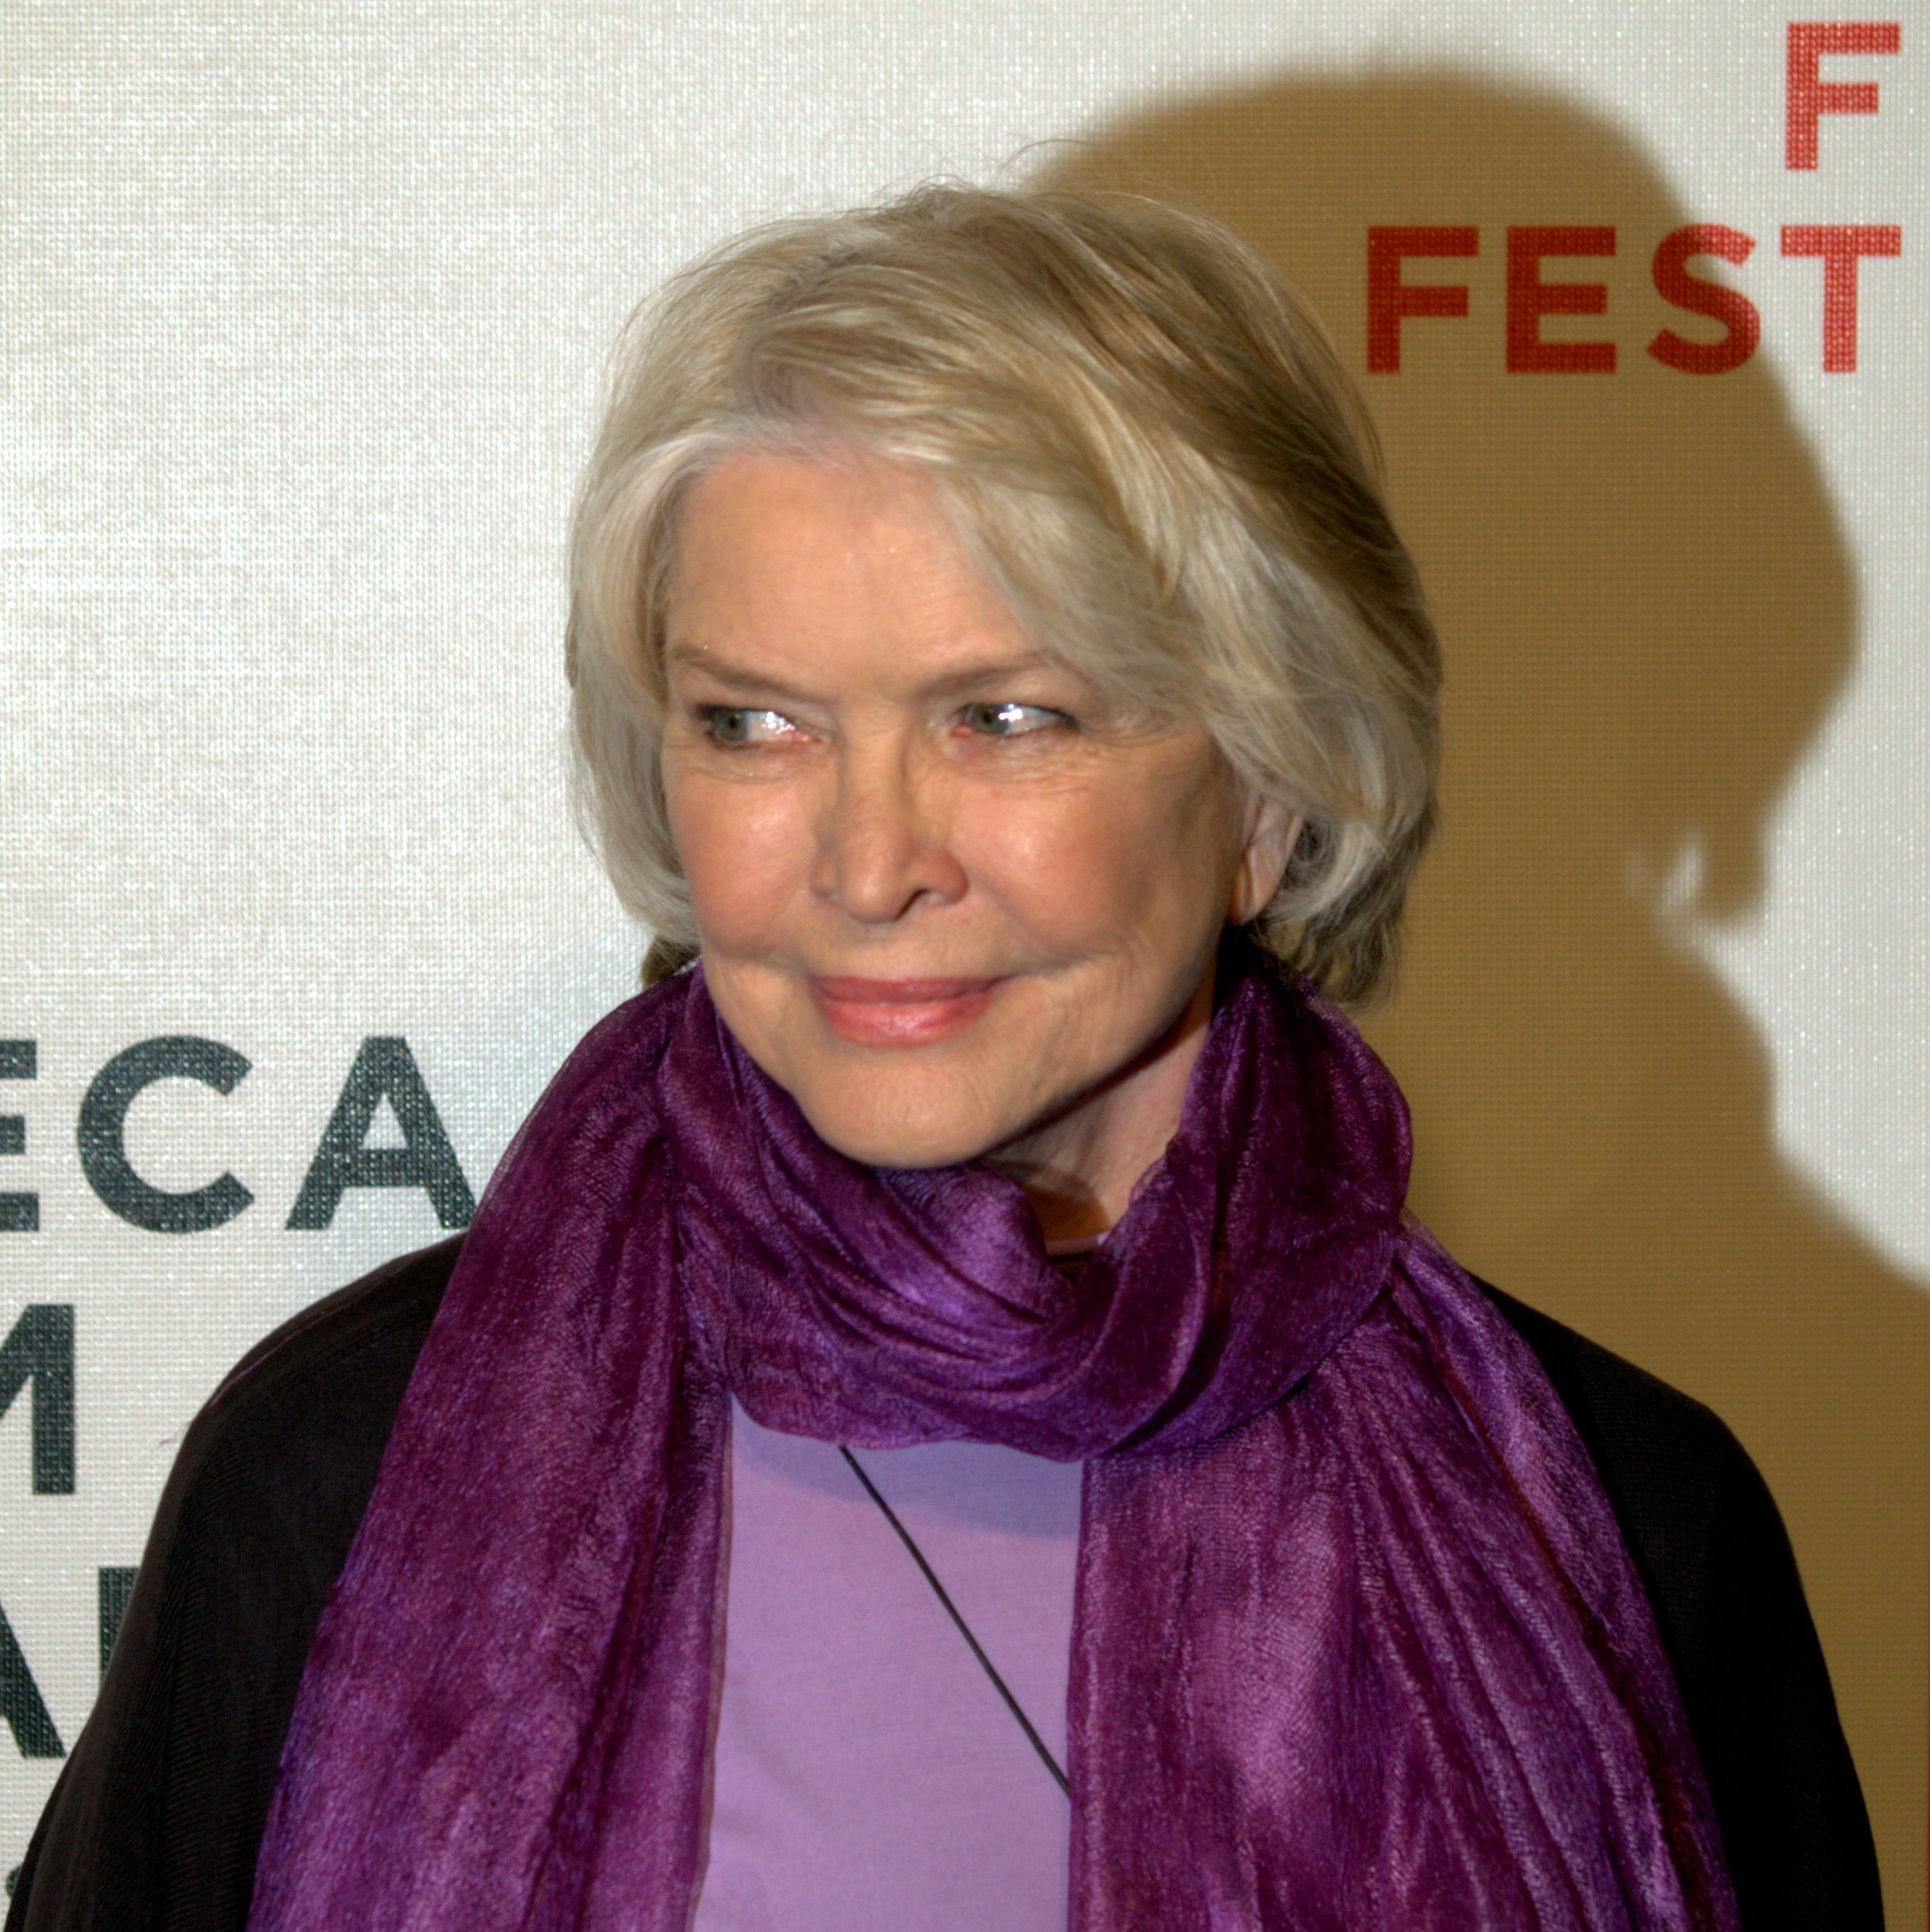 Ellen Burstyn - Wikipedia, the free encyclopediauk. ellens deepest secret